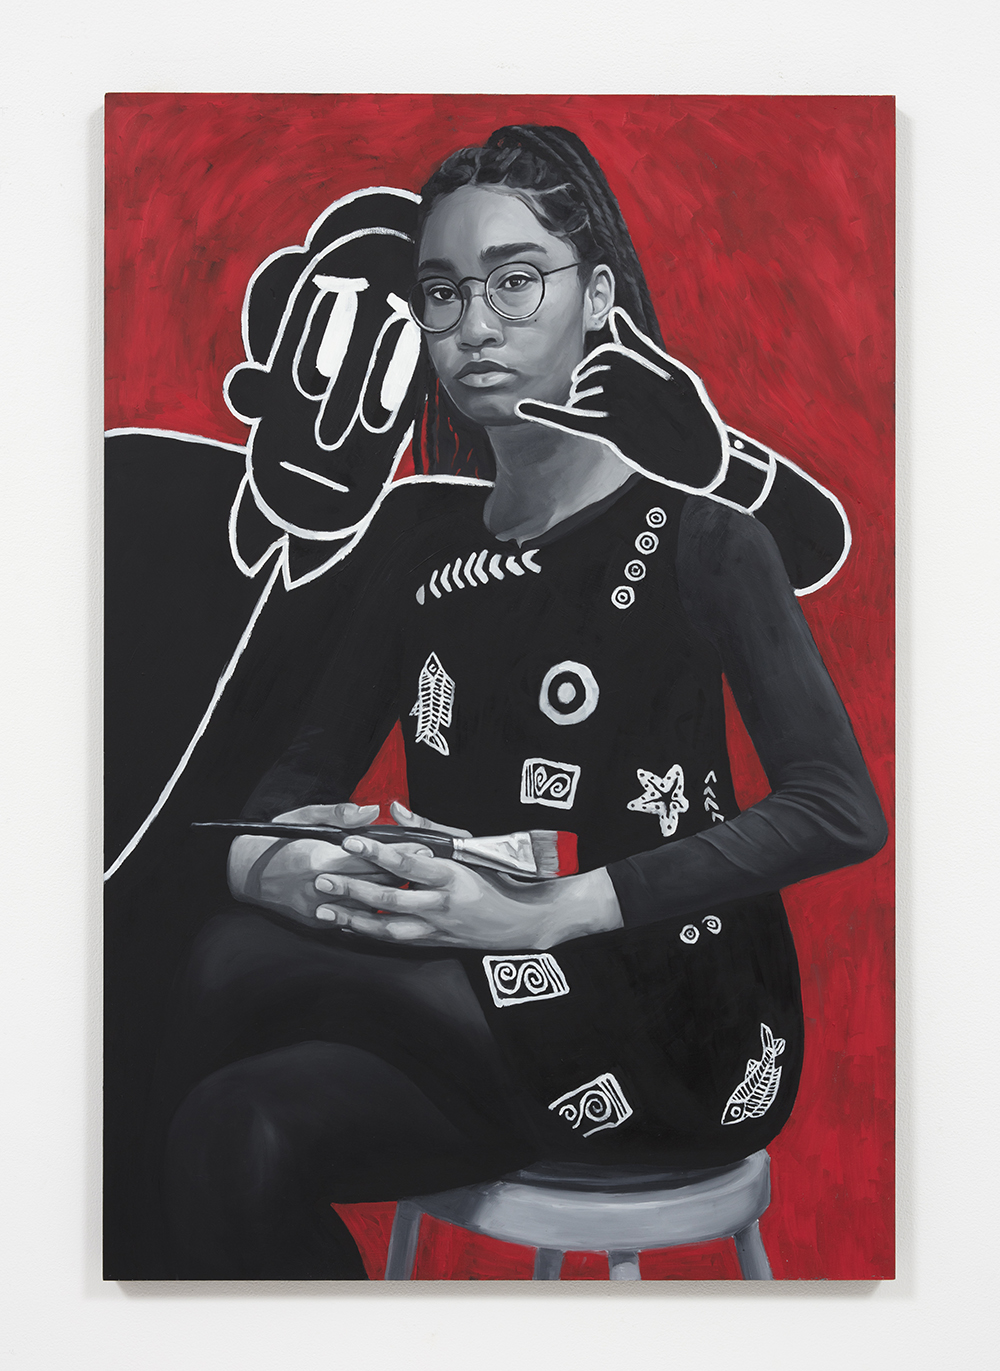 Brittany Tucker.<em> Portrait of the Artist Taking a Call</em>, 2019. Oil on panel, 36 x 24 inches  (91.4 x 61 cm)